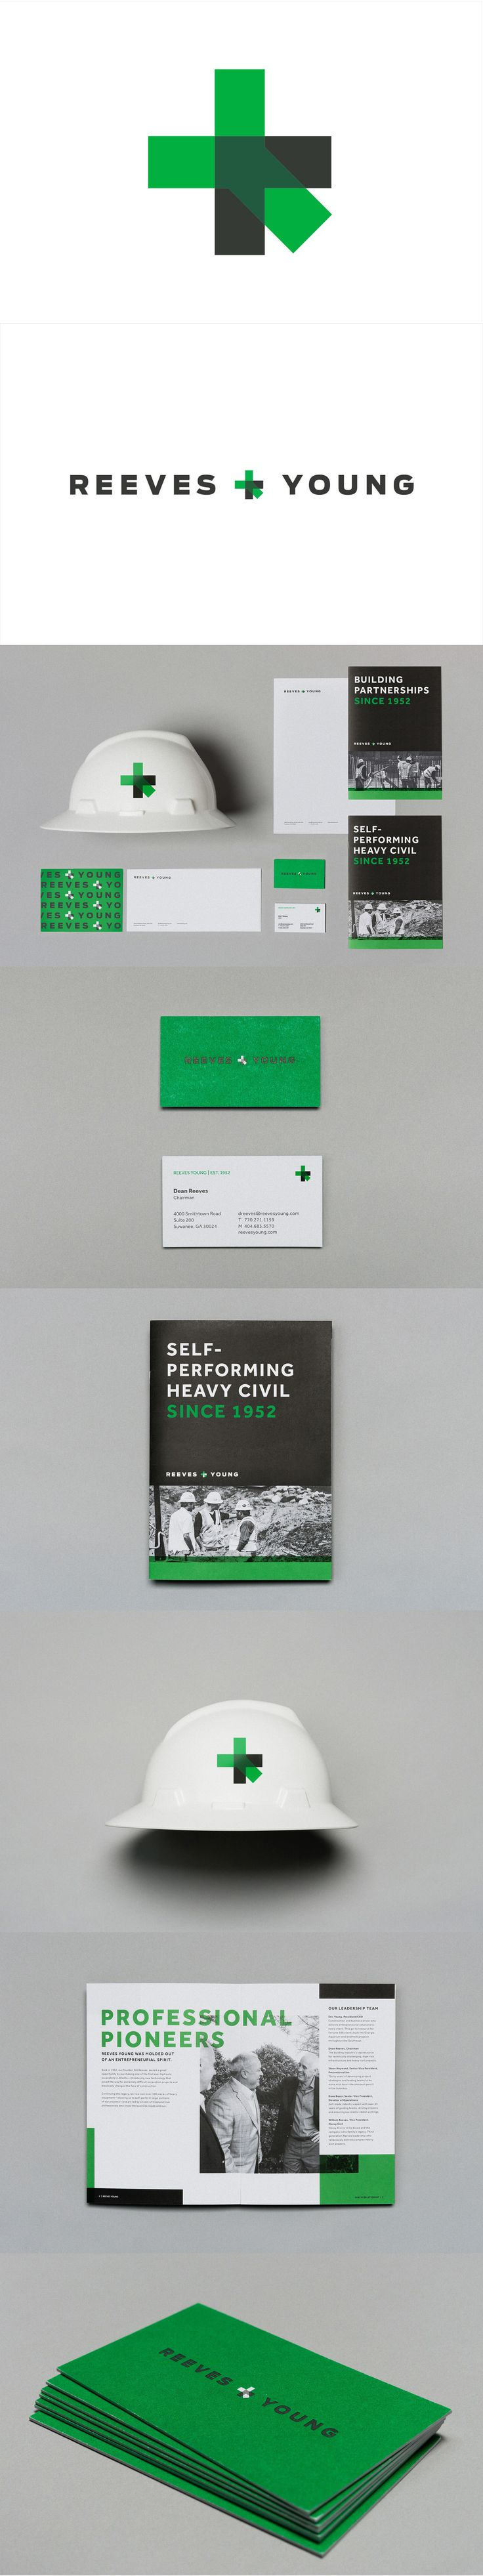 Reeves & Young by Matchstic, more inspiration here: http://ibrandstudio.com/inspiration/construction-company-identity-designs